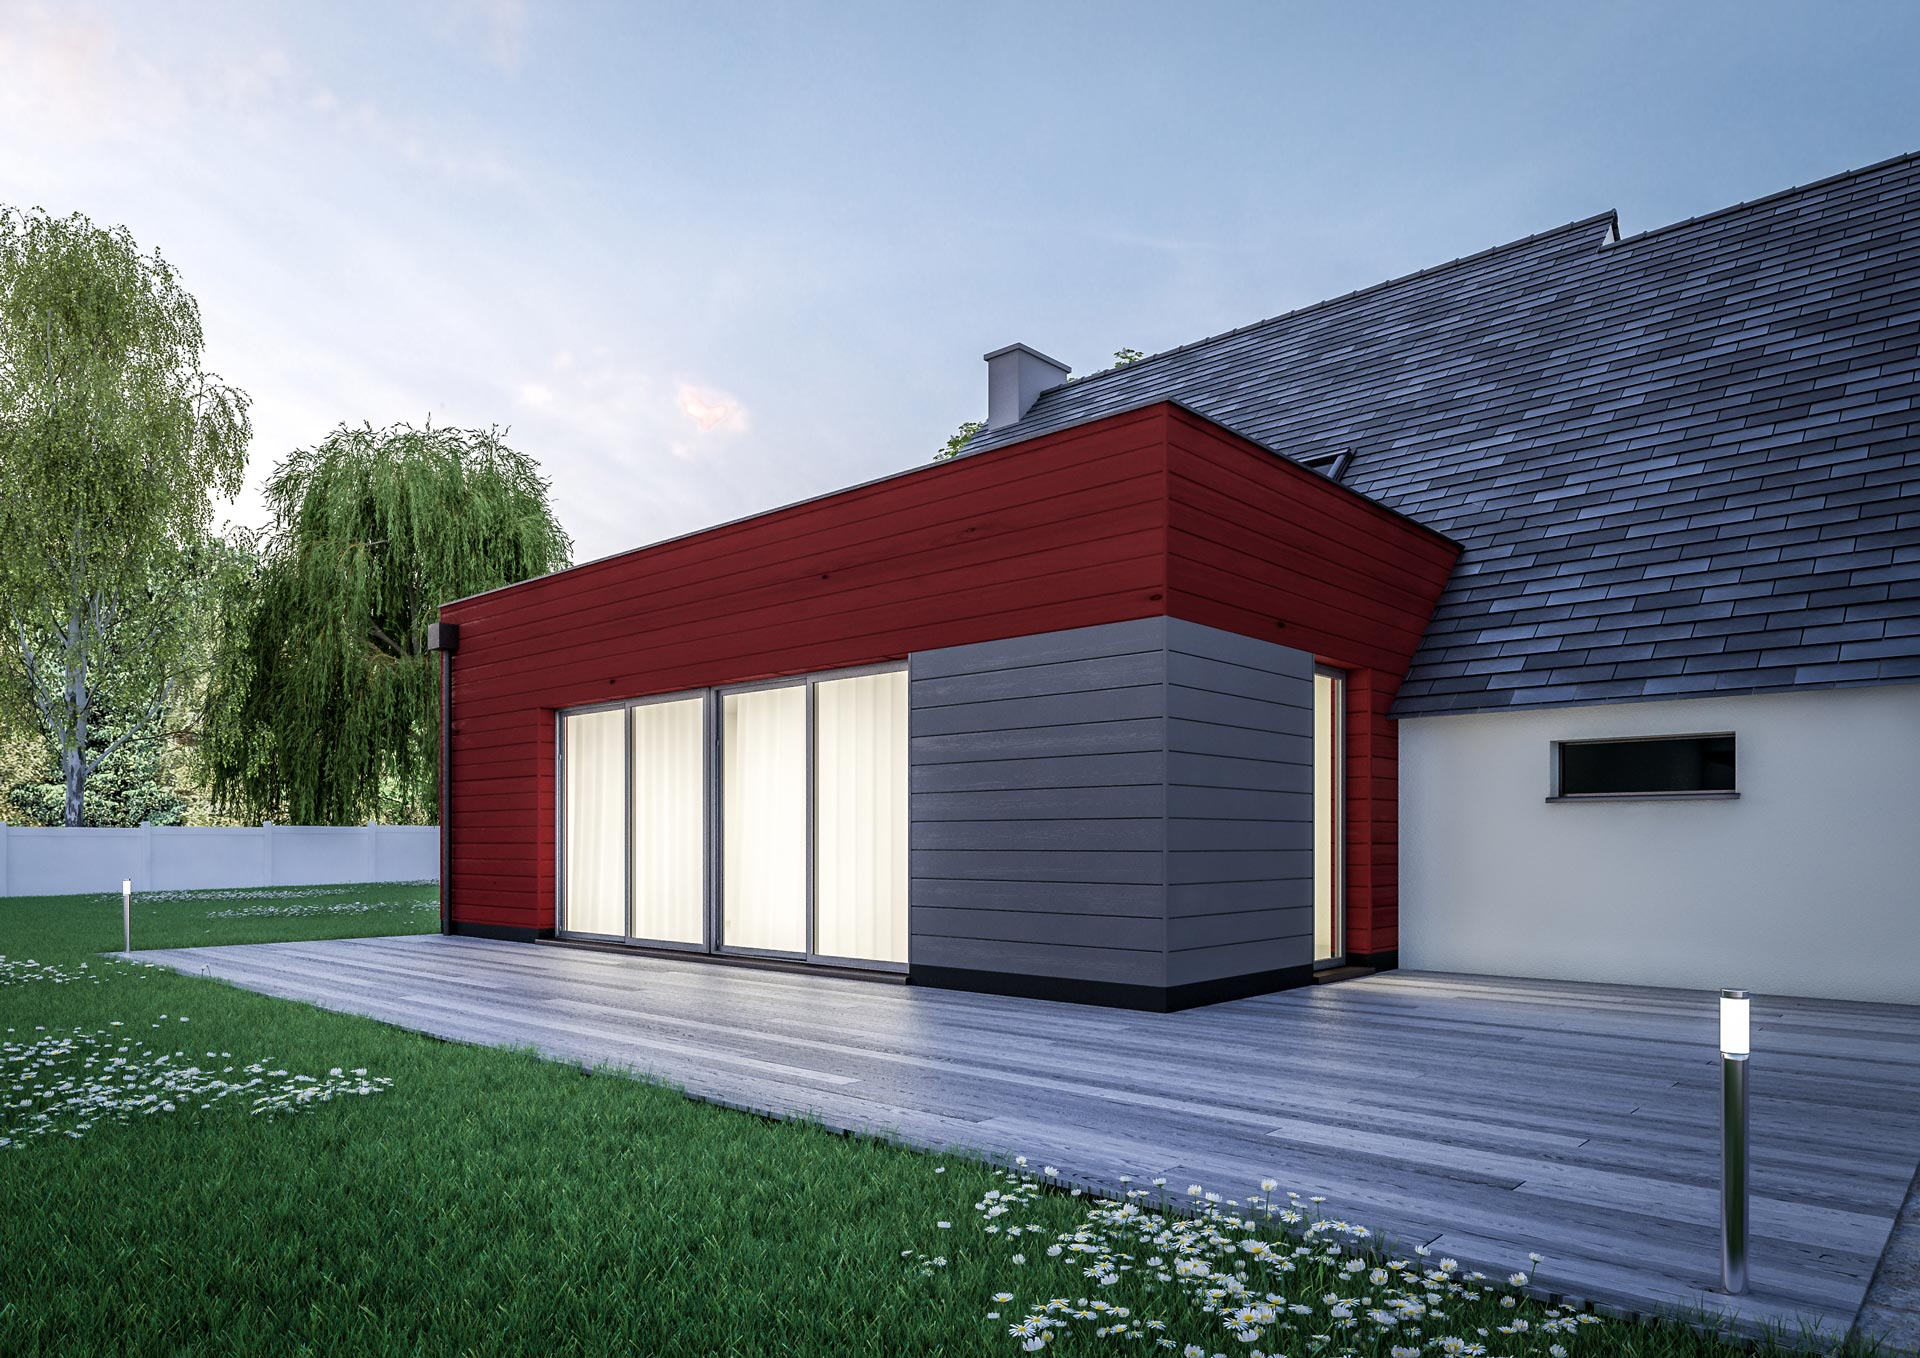 Stunning Extension Maison Cube Modele Ground With Modele Facade Maison Moderne